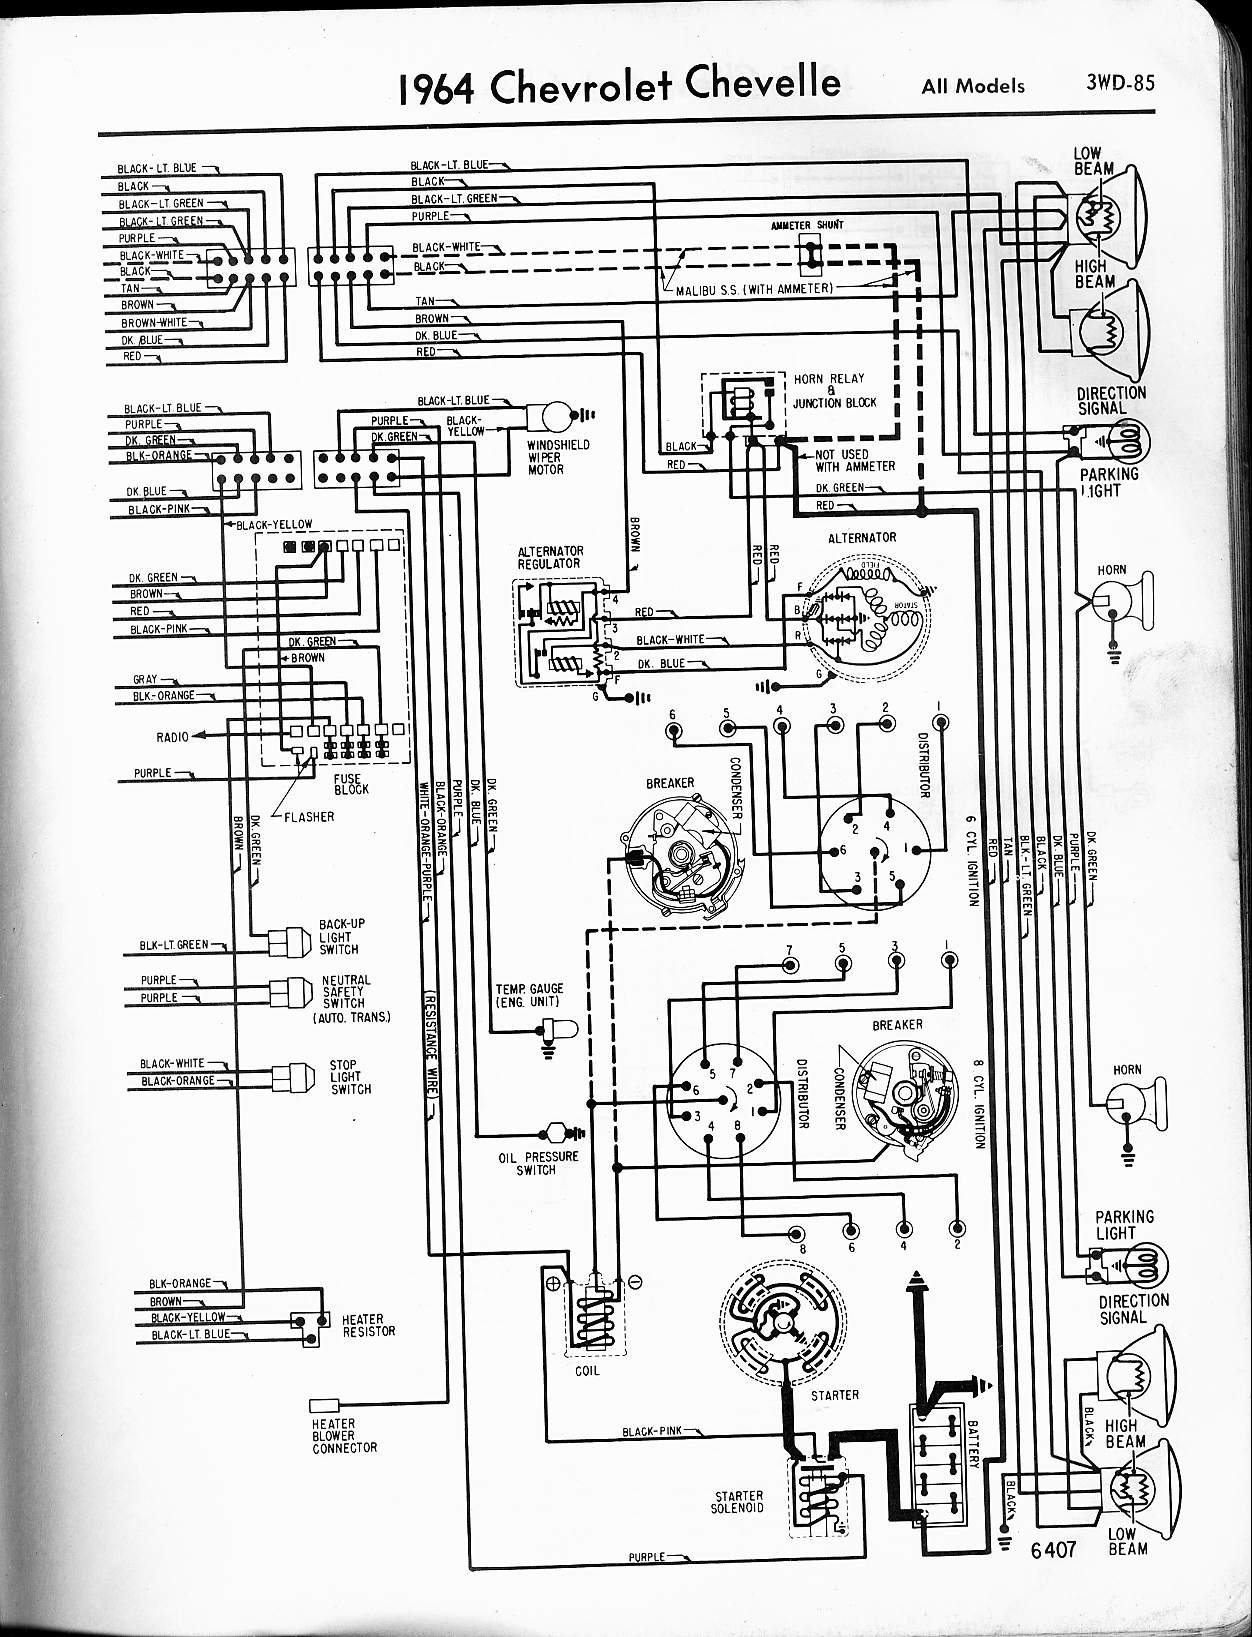 MWireChev64_3WD 085 chevy diagrams 1985 Chevy Truck Wiring Harness at webbmarketing.co